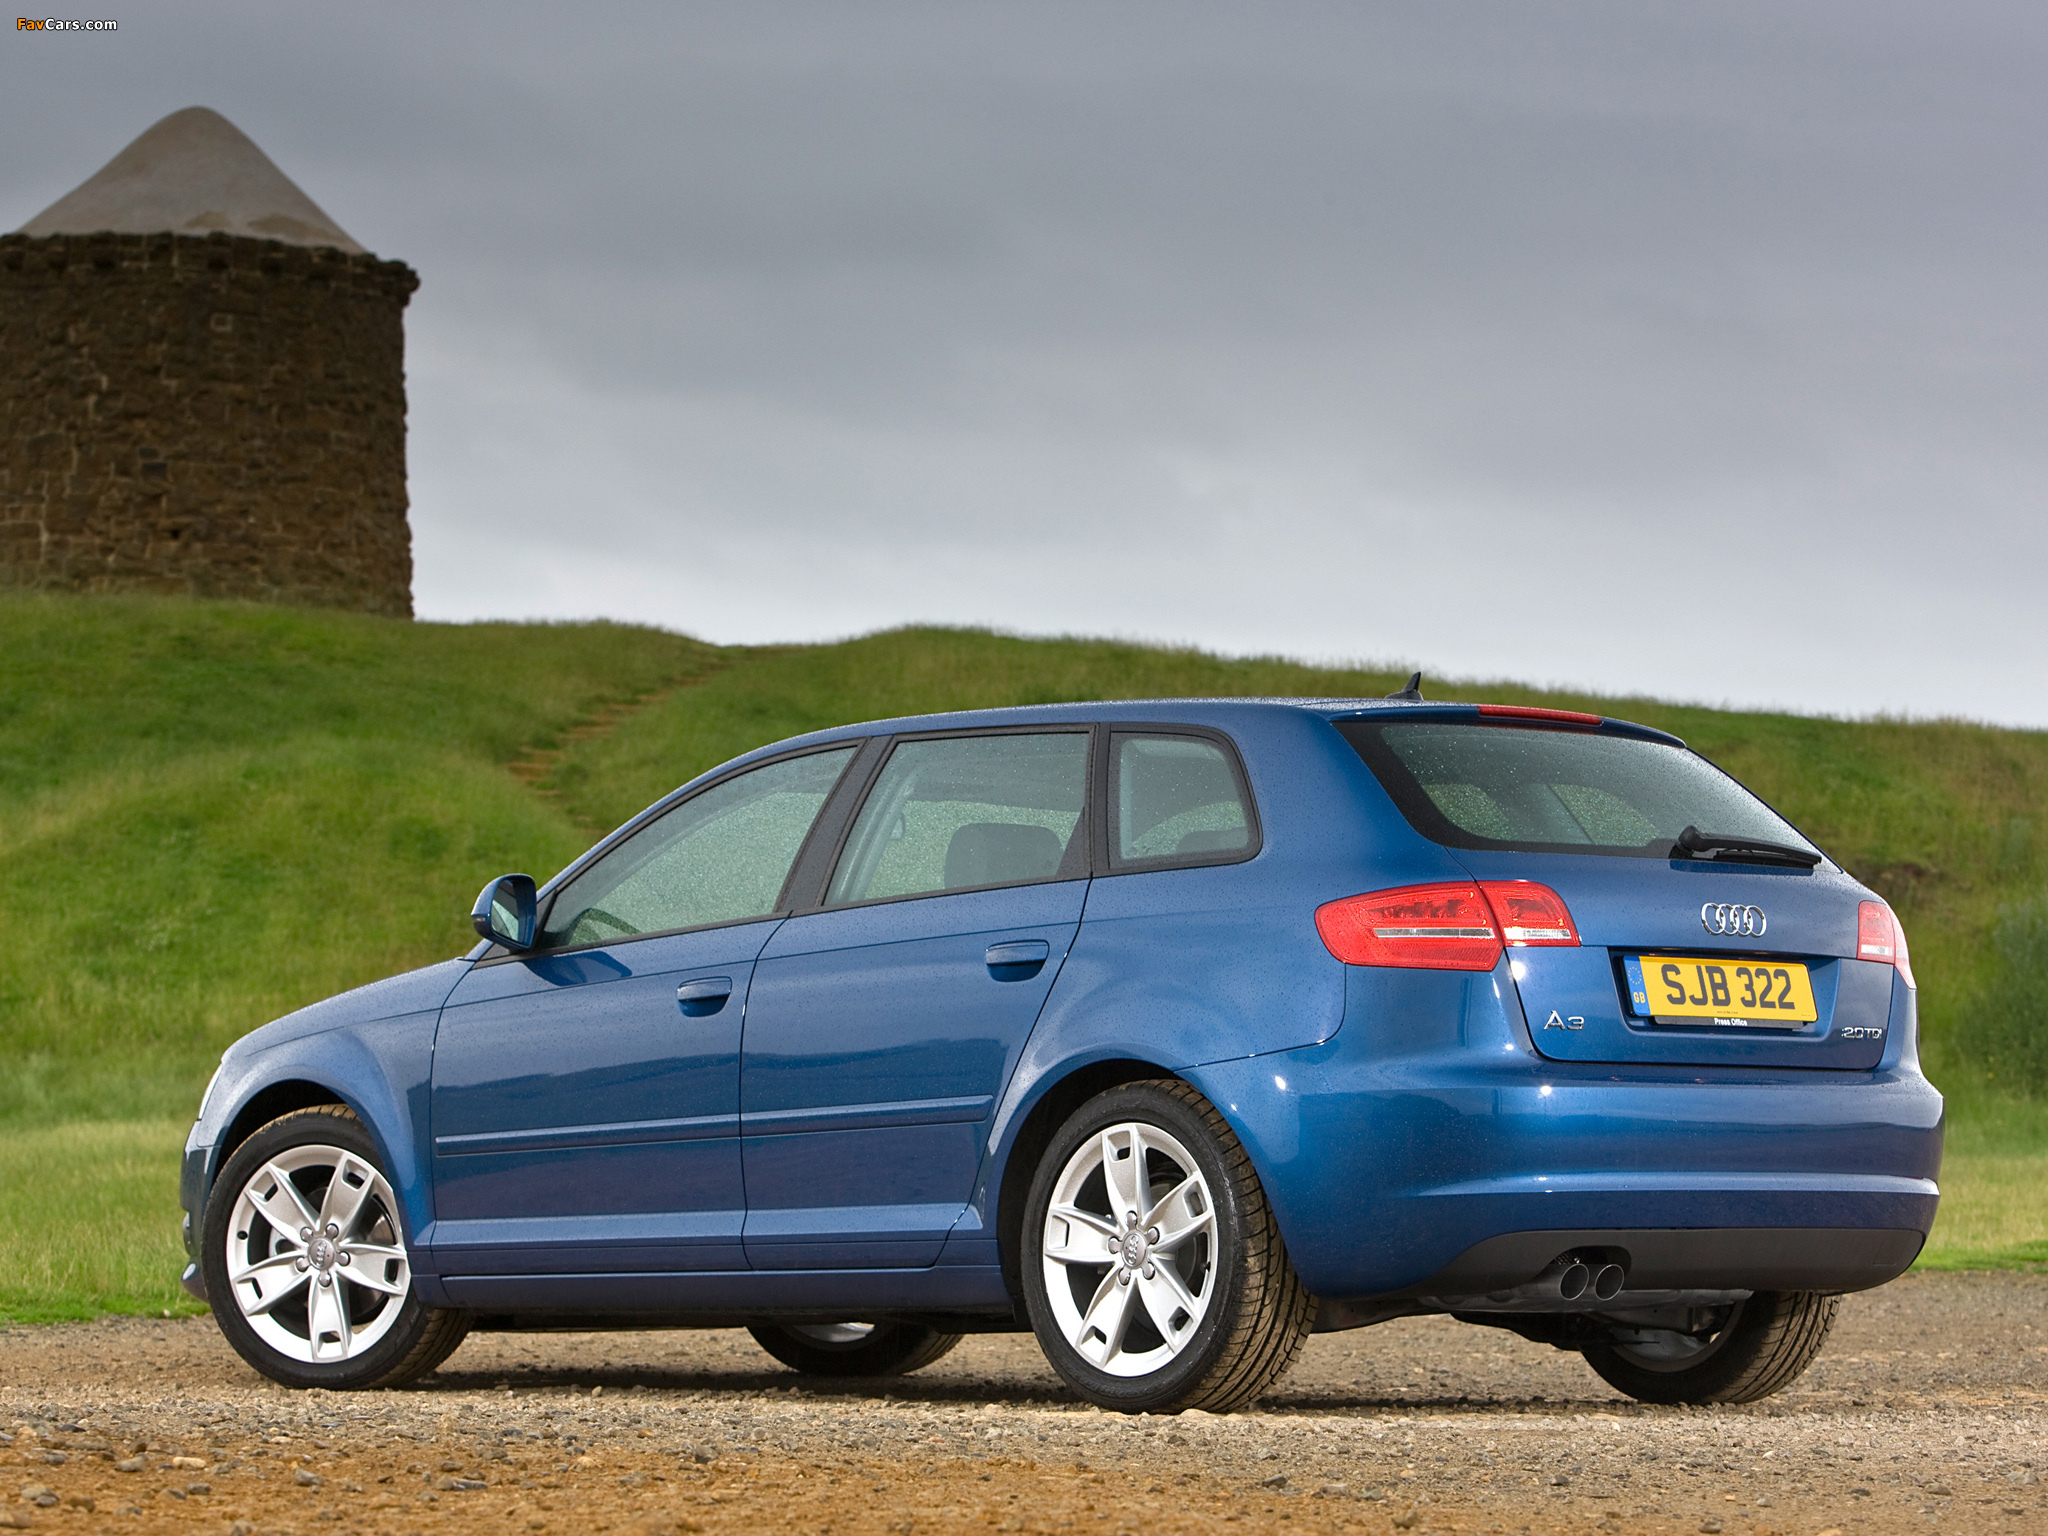 Audi a3 sportback 2 0 tdi uk spec 8pa 2008 2010 images for Dimensioni audi a3 sportback 2008